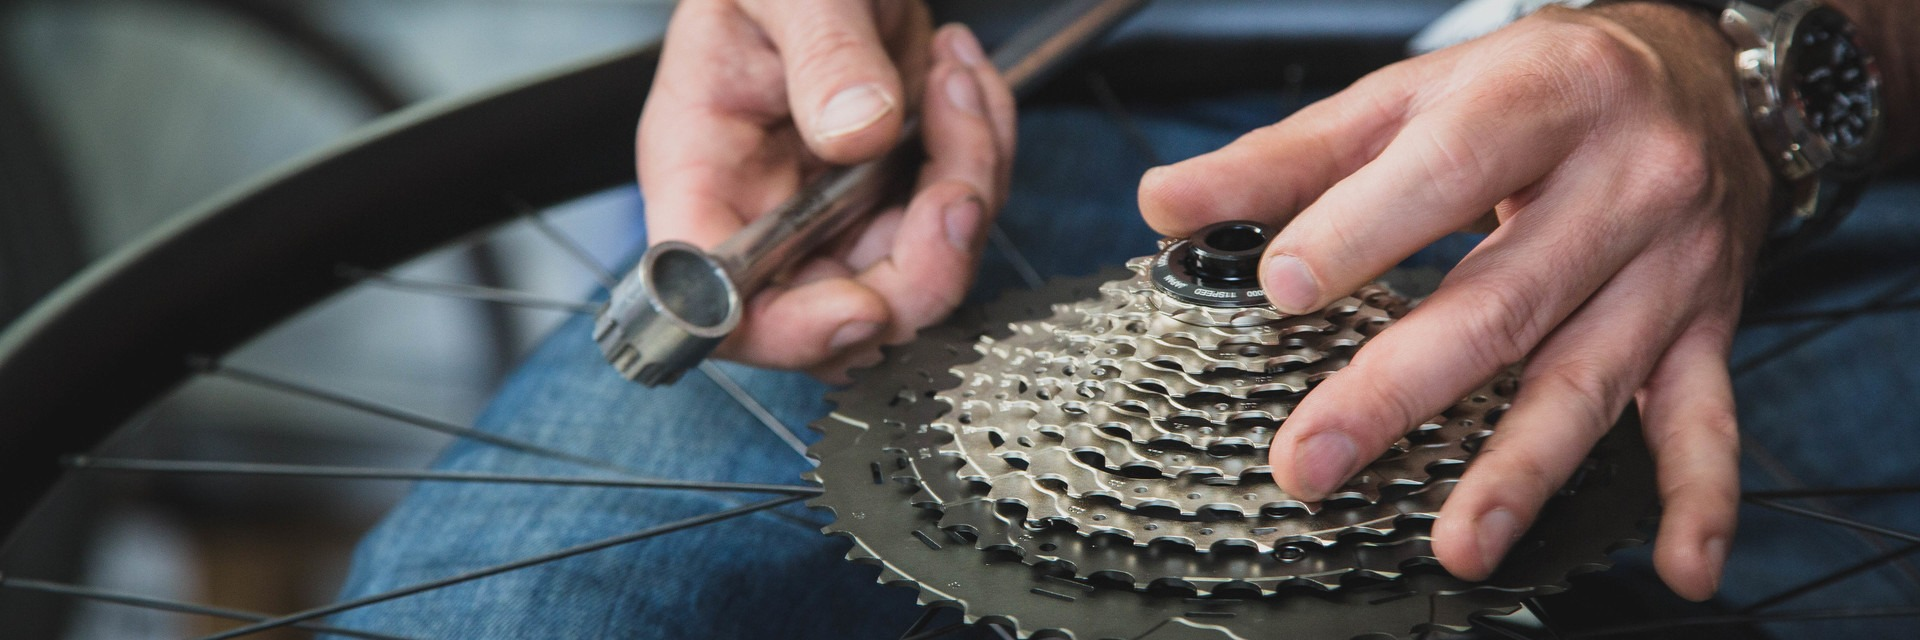 Bike Repair & Tune-up Services